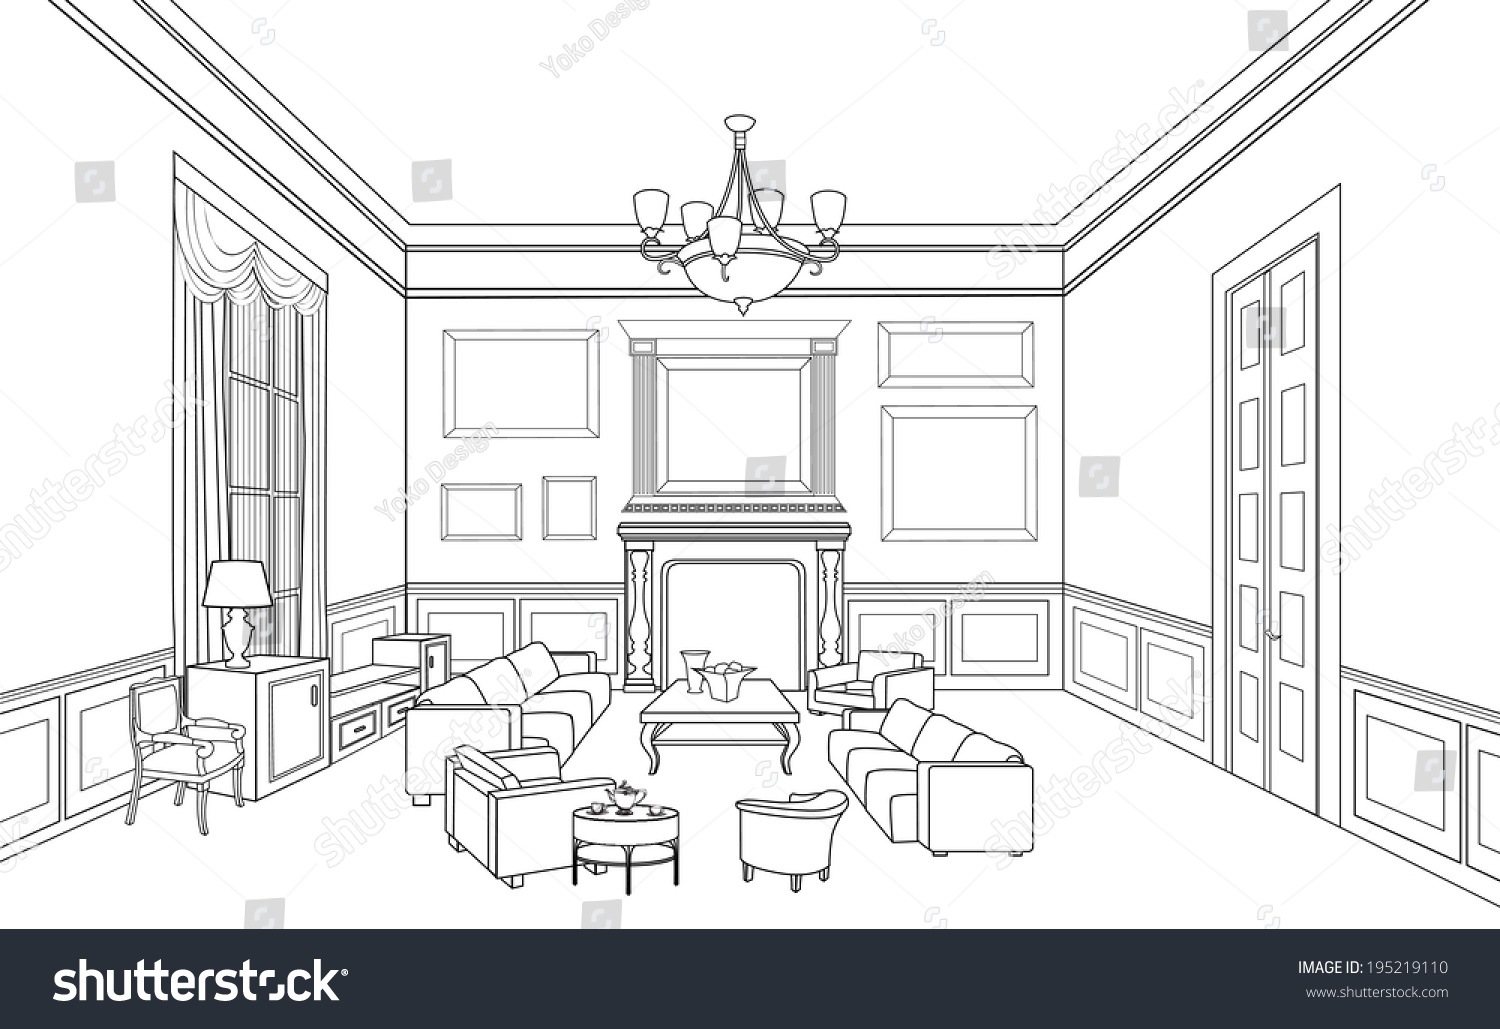 Drawingroom editable vector illustration outline sketch for Interior design images vector